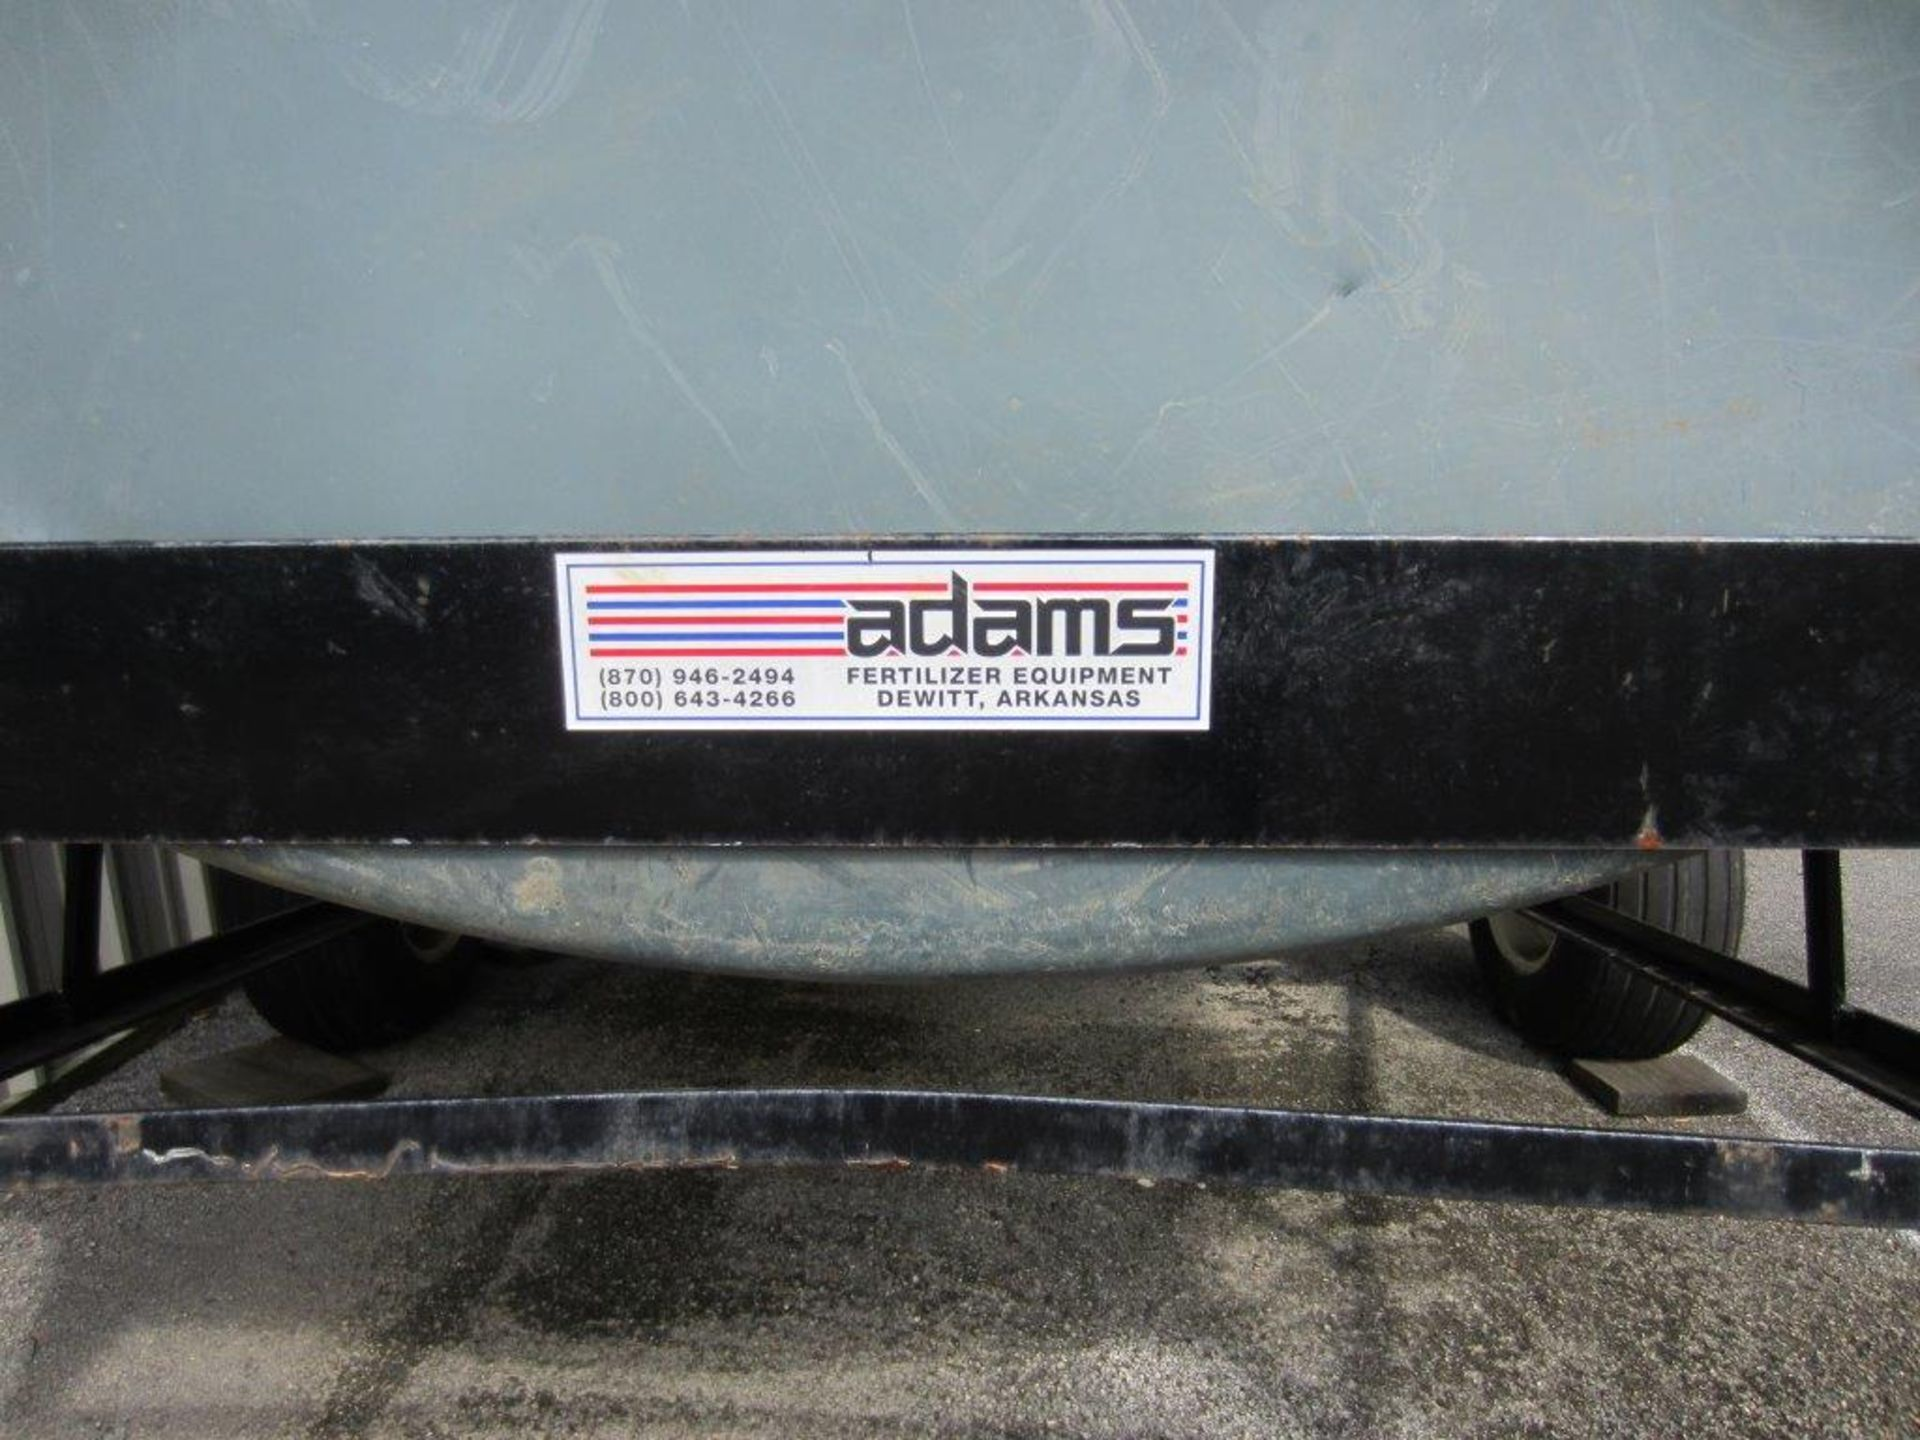 ADAMS SINGLE AXLE TRAILER WITH OIL DRUM (SUBJECT TO GROUP LOT 7) - Image 2 of 3